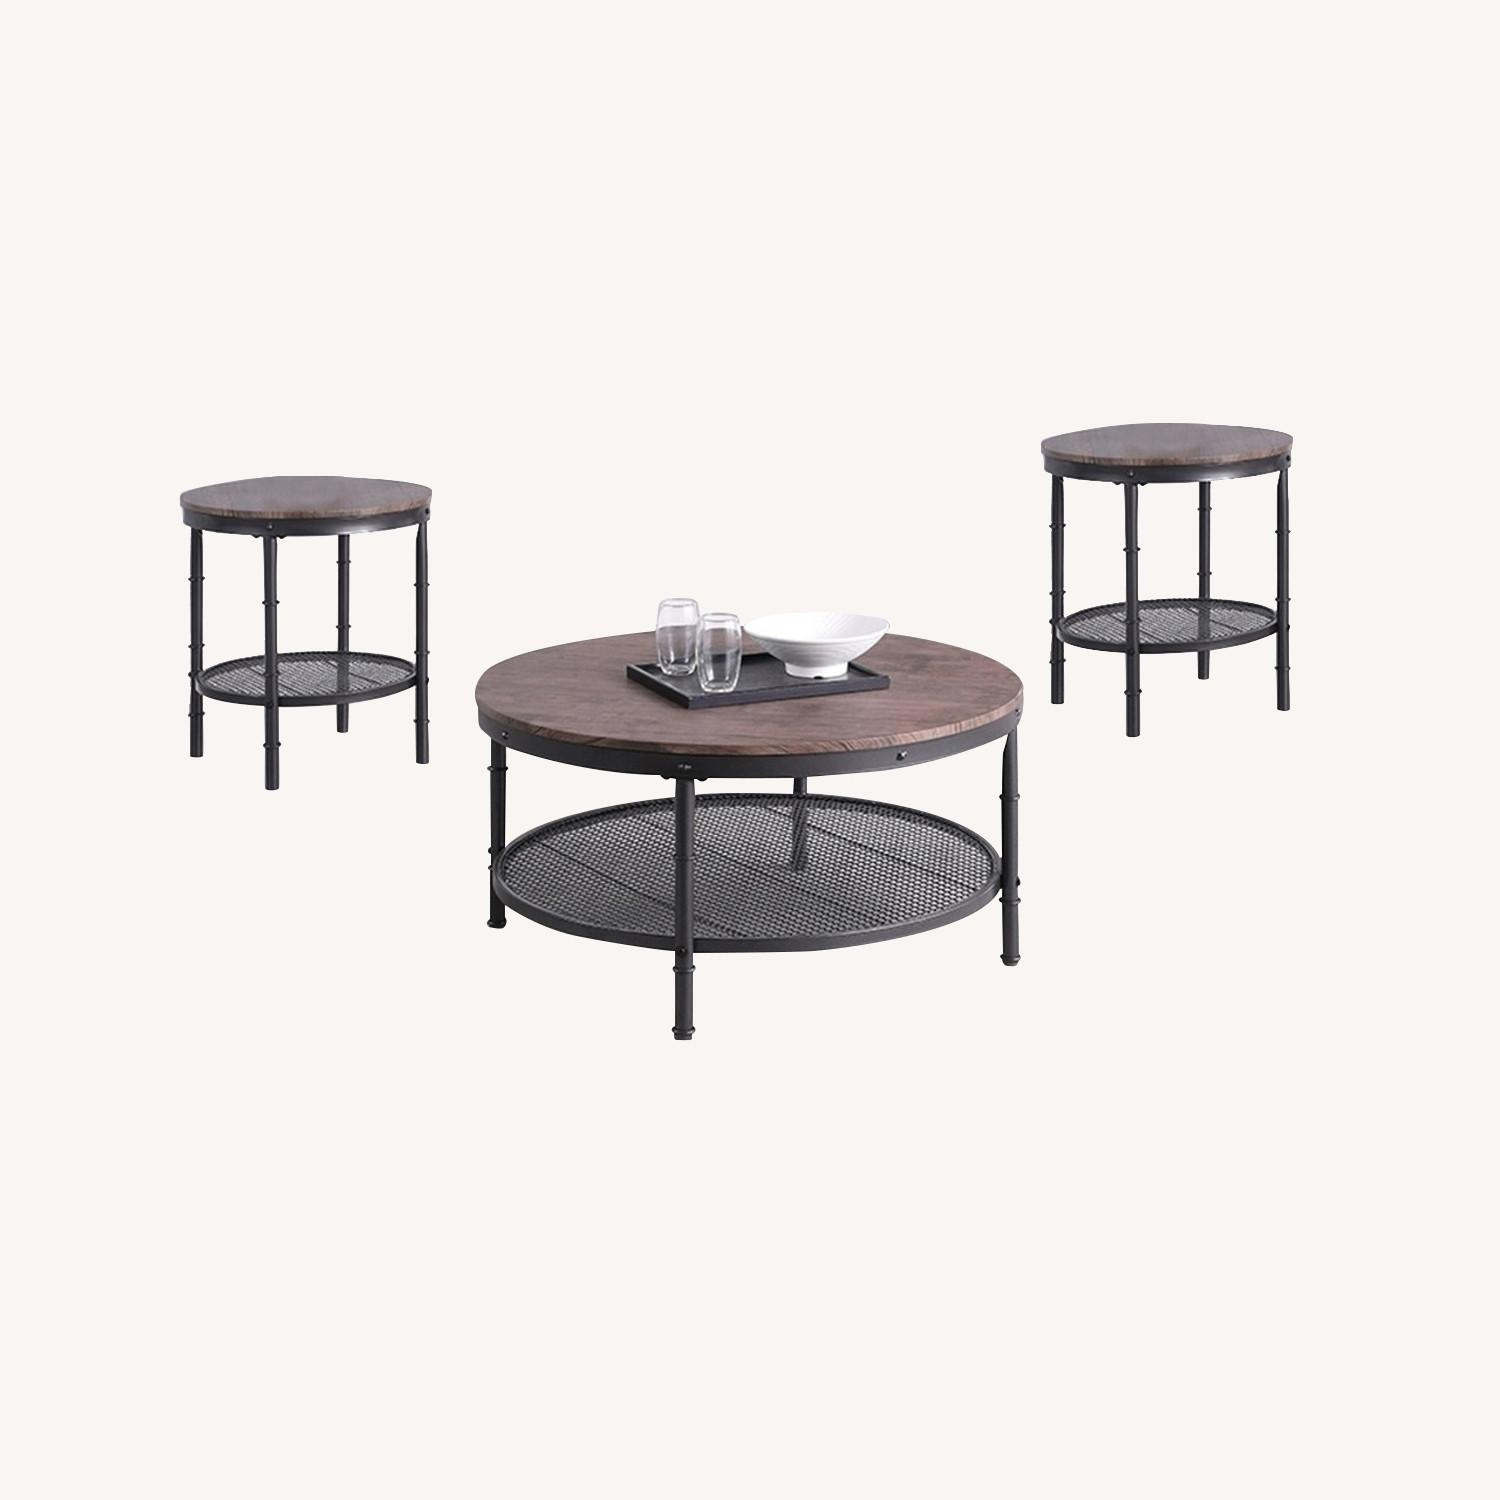 3-Piece Occasional Table In Weathered Brown Finish - image-3